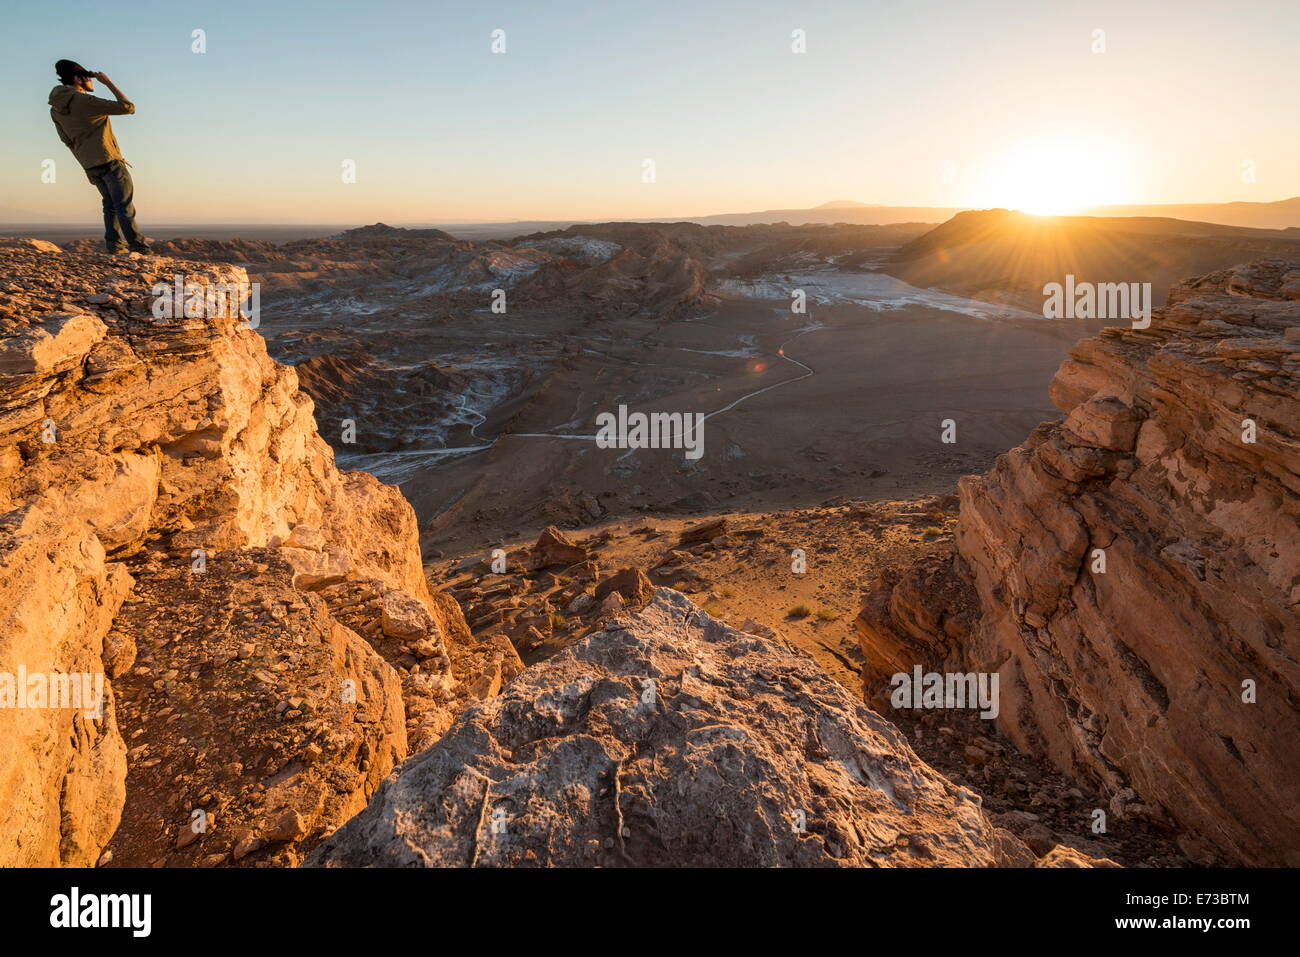 Valle de la Luna (Valley of the Moon), Atacama Desert, El Norte Grande, Chile, South America - Stock Image